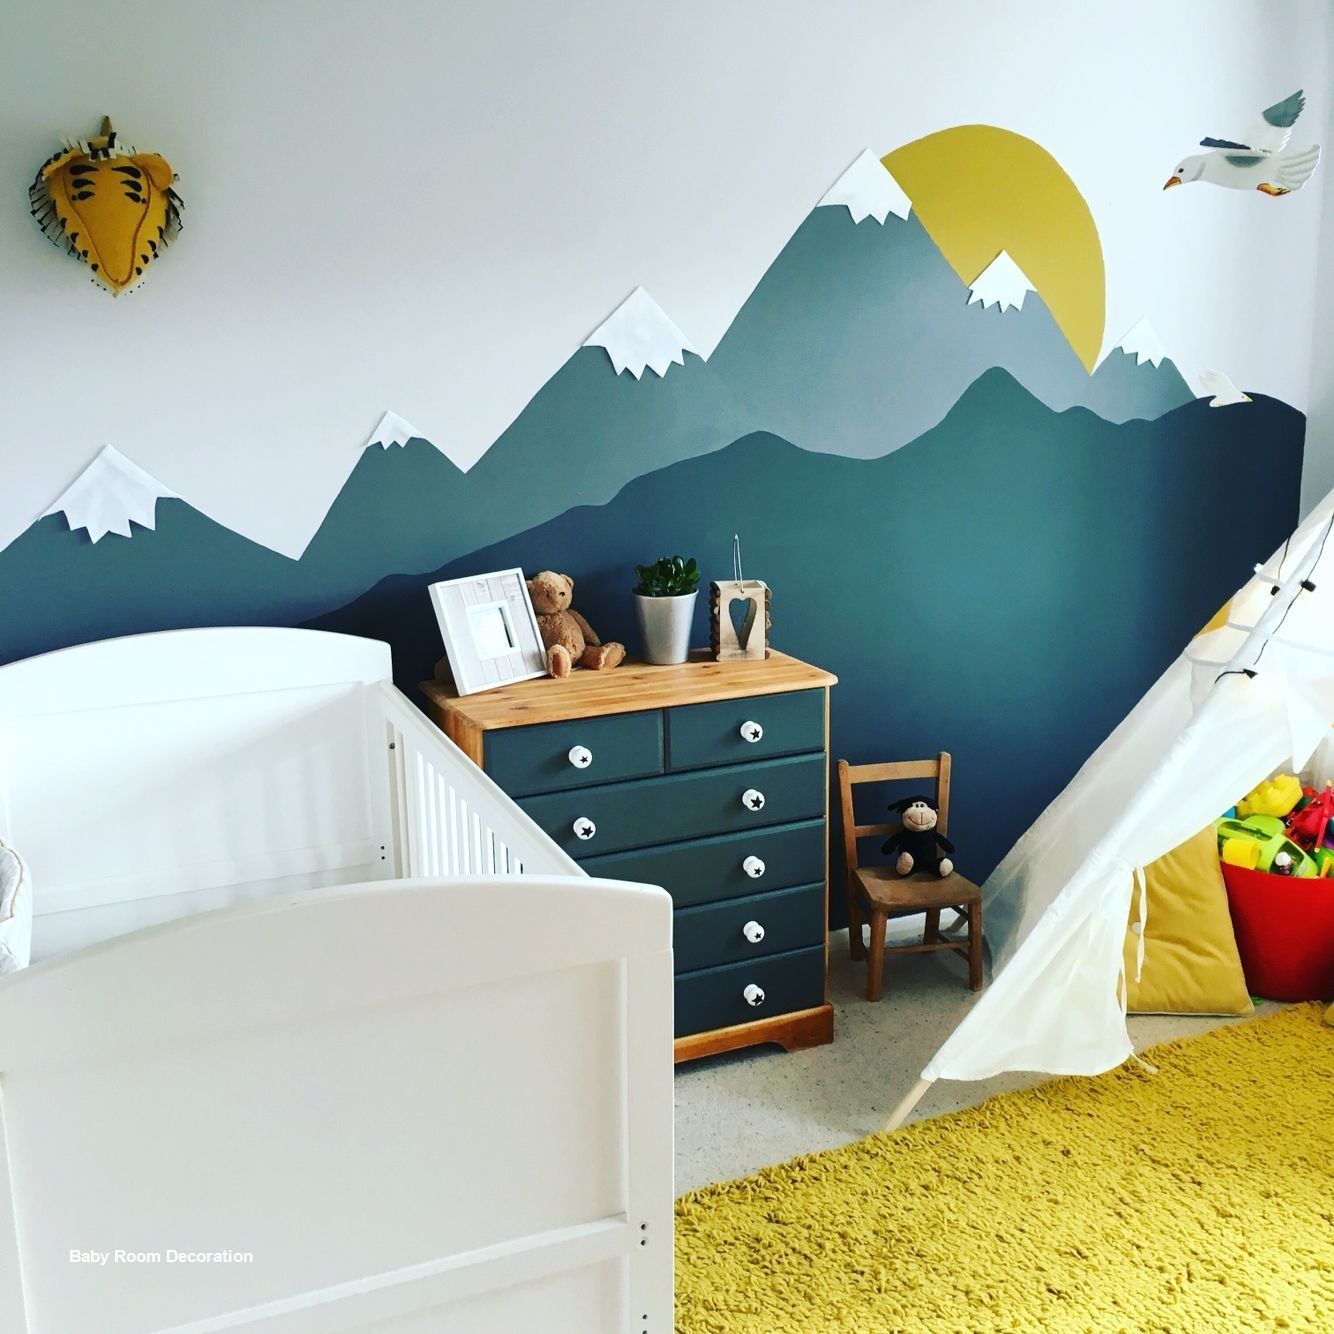 Adorably Functional And Budget Friendly Long Searched Nursery Decor Ideas Craftspost Kids Room Wall Mountain Mural Kids Room Murals